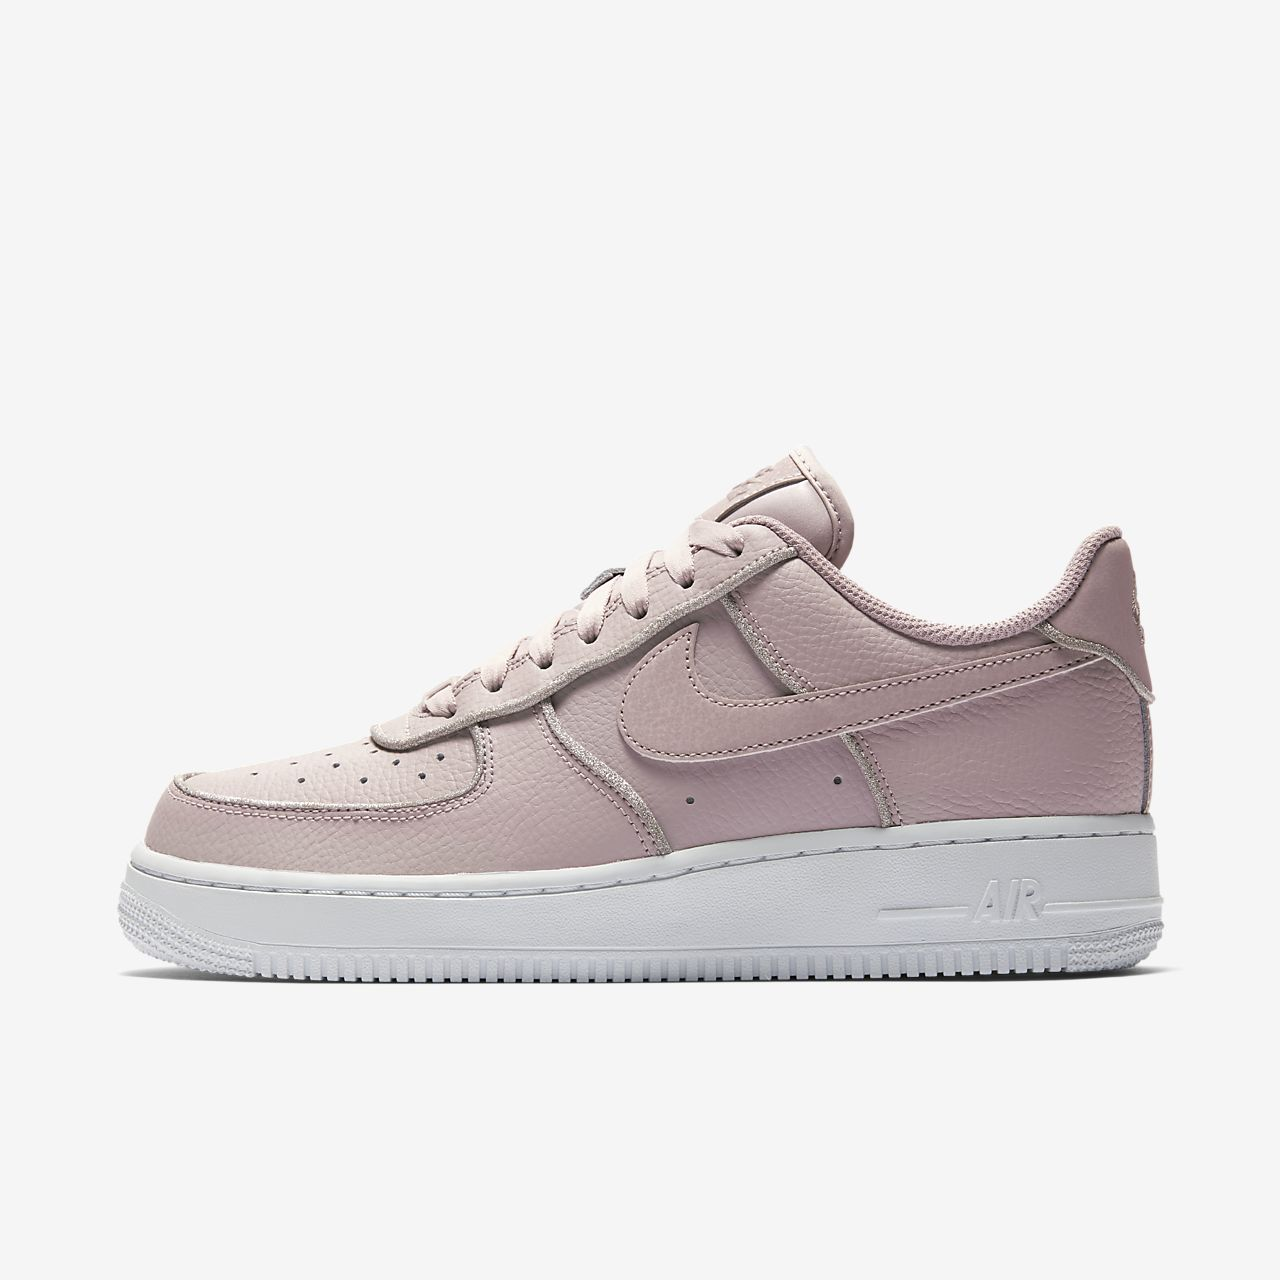 new concept 06a69 f41ef ... Calzado para mujer Nike Air Force 1 Low Glitter